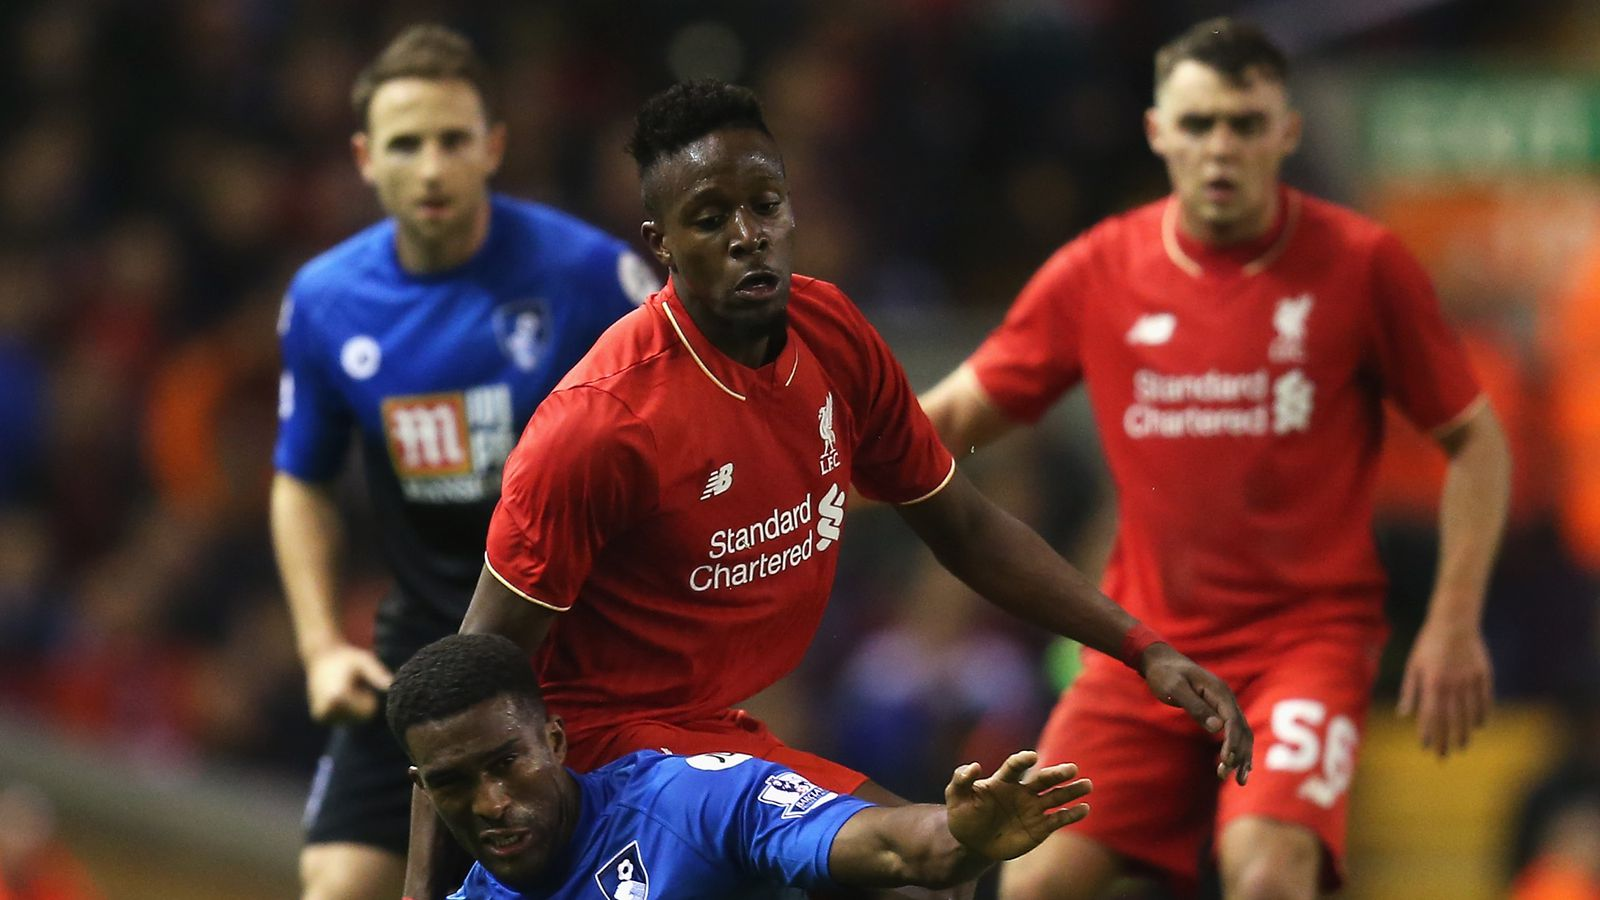 Liverpool Vs Bournemouth Totalsportek: Premier League Coverage: AFC Bournemouth Vs. Liverpool